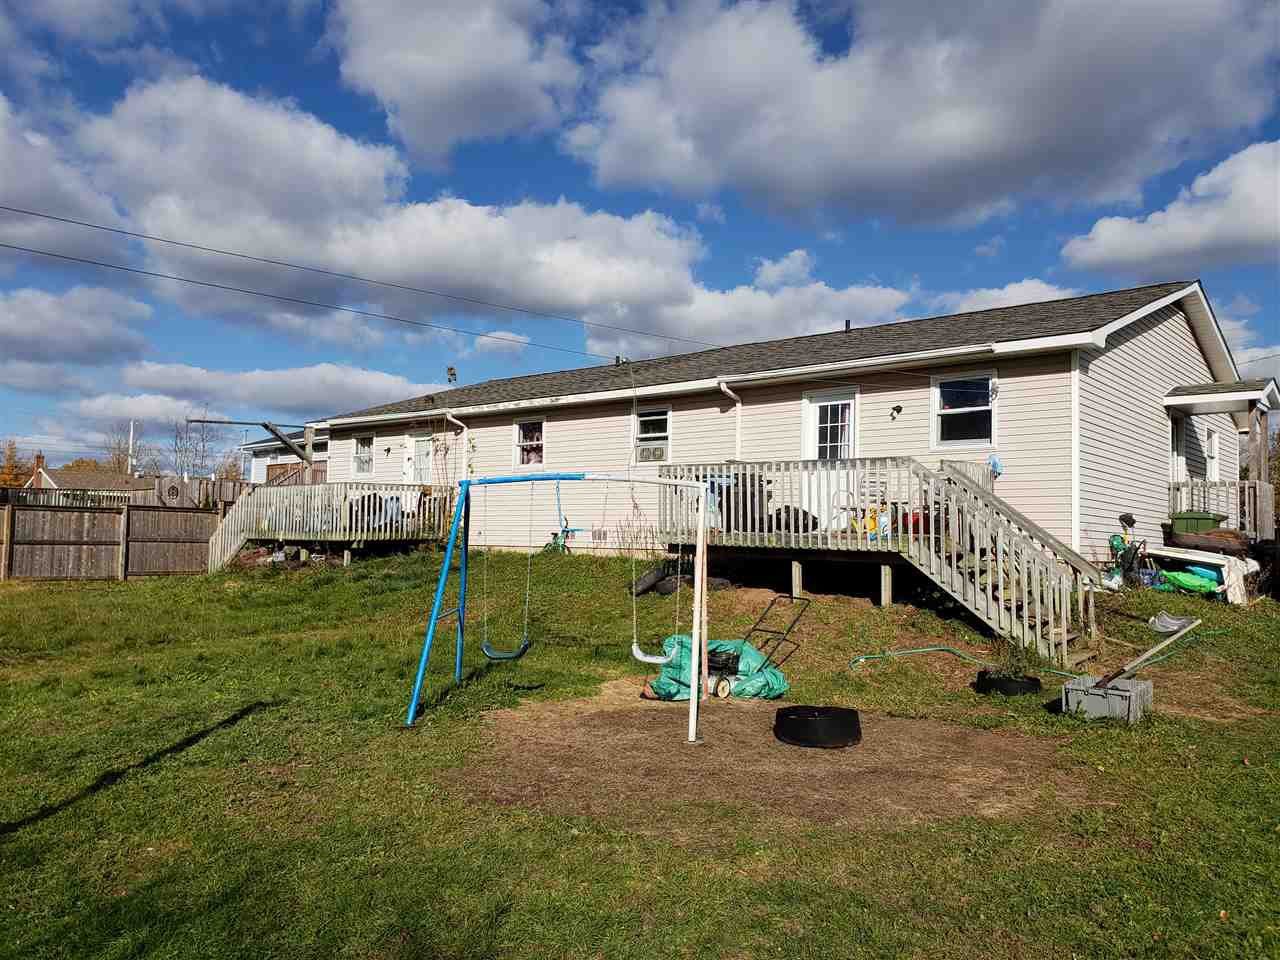 Photo 3: Photos: 1135 & 1137 Andringa Drive in Cambridge: 404-Kings County Multi-Family for sale (Annapolis Valley)  : MLS®# 201826260